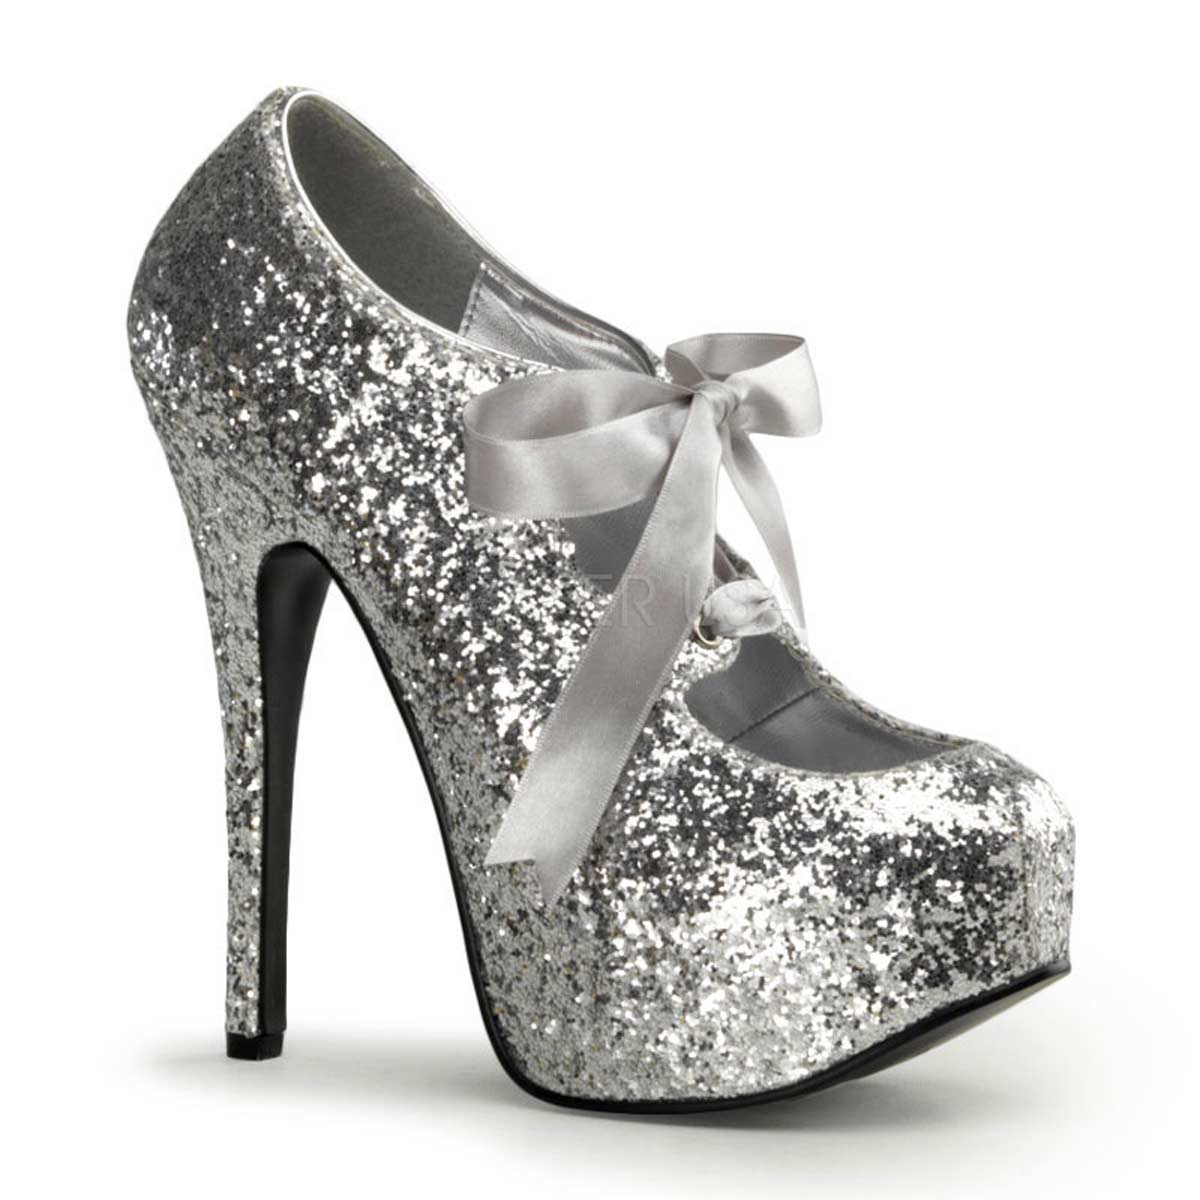 Pleaser Bordello Teeze-10G - Silver Glitter in Heels & Platforms ...